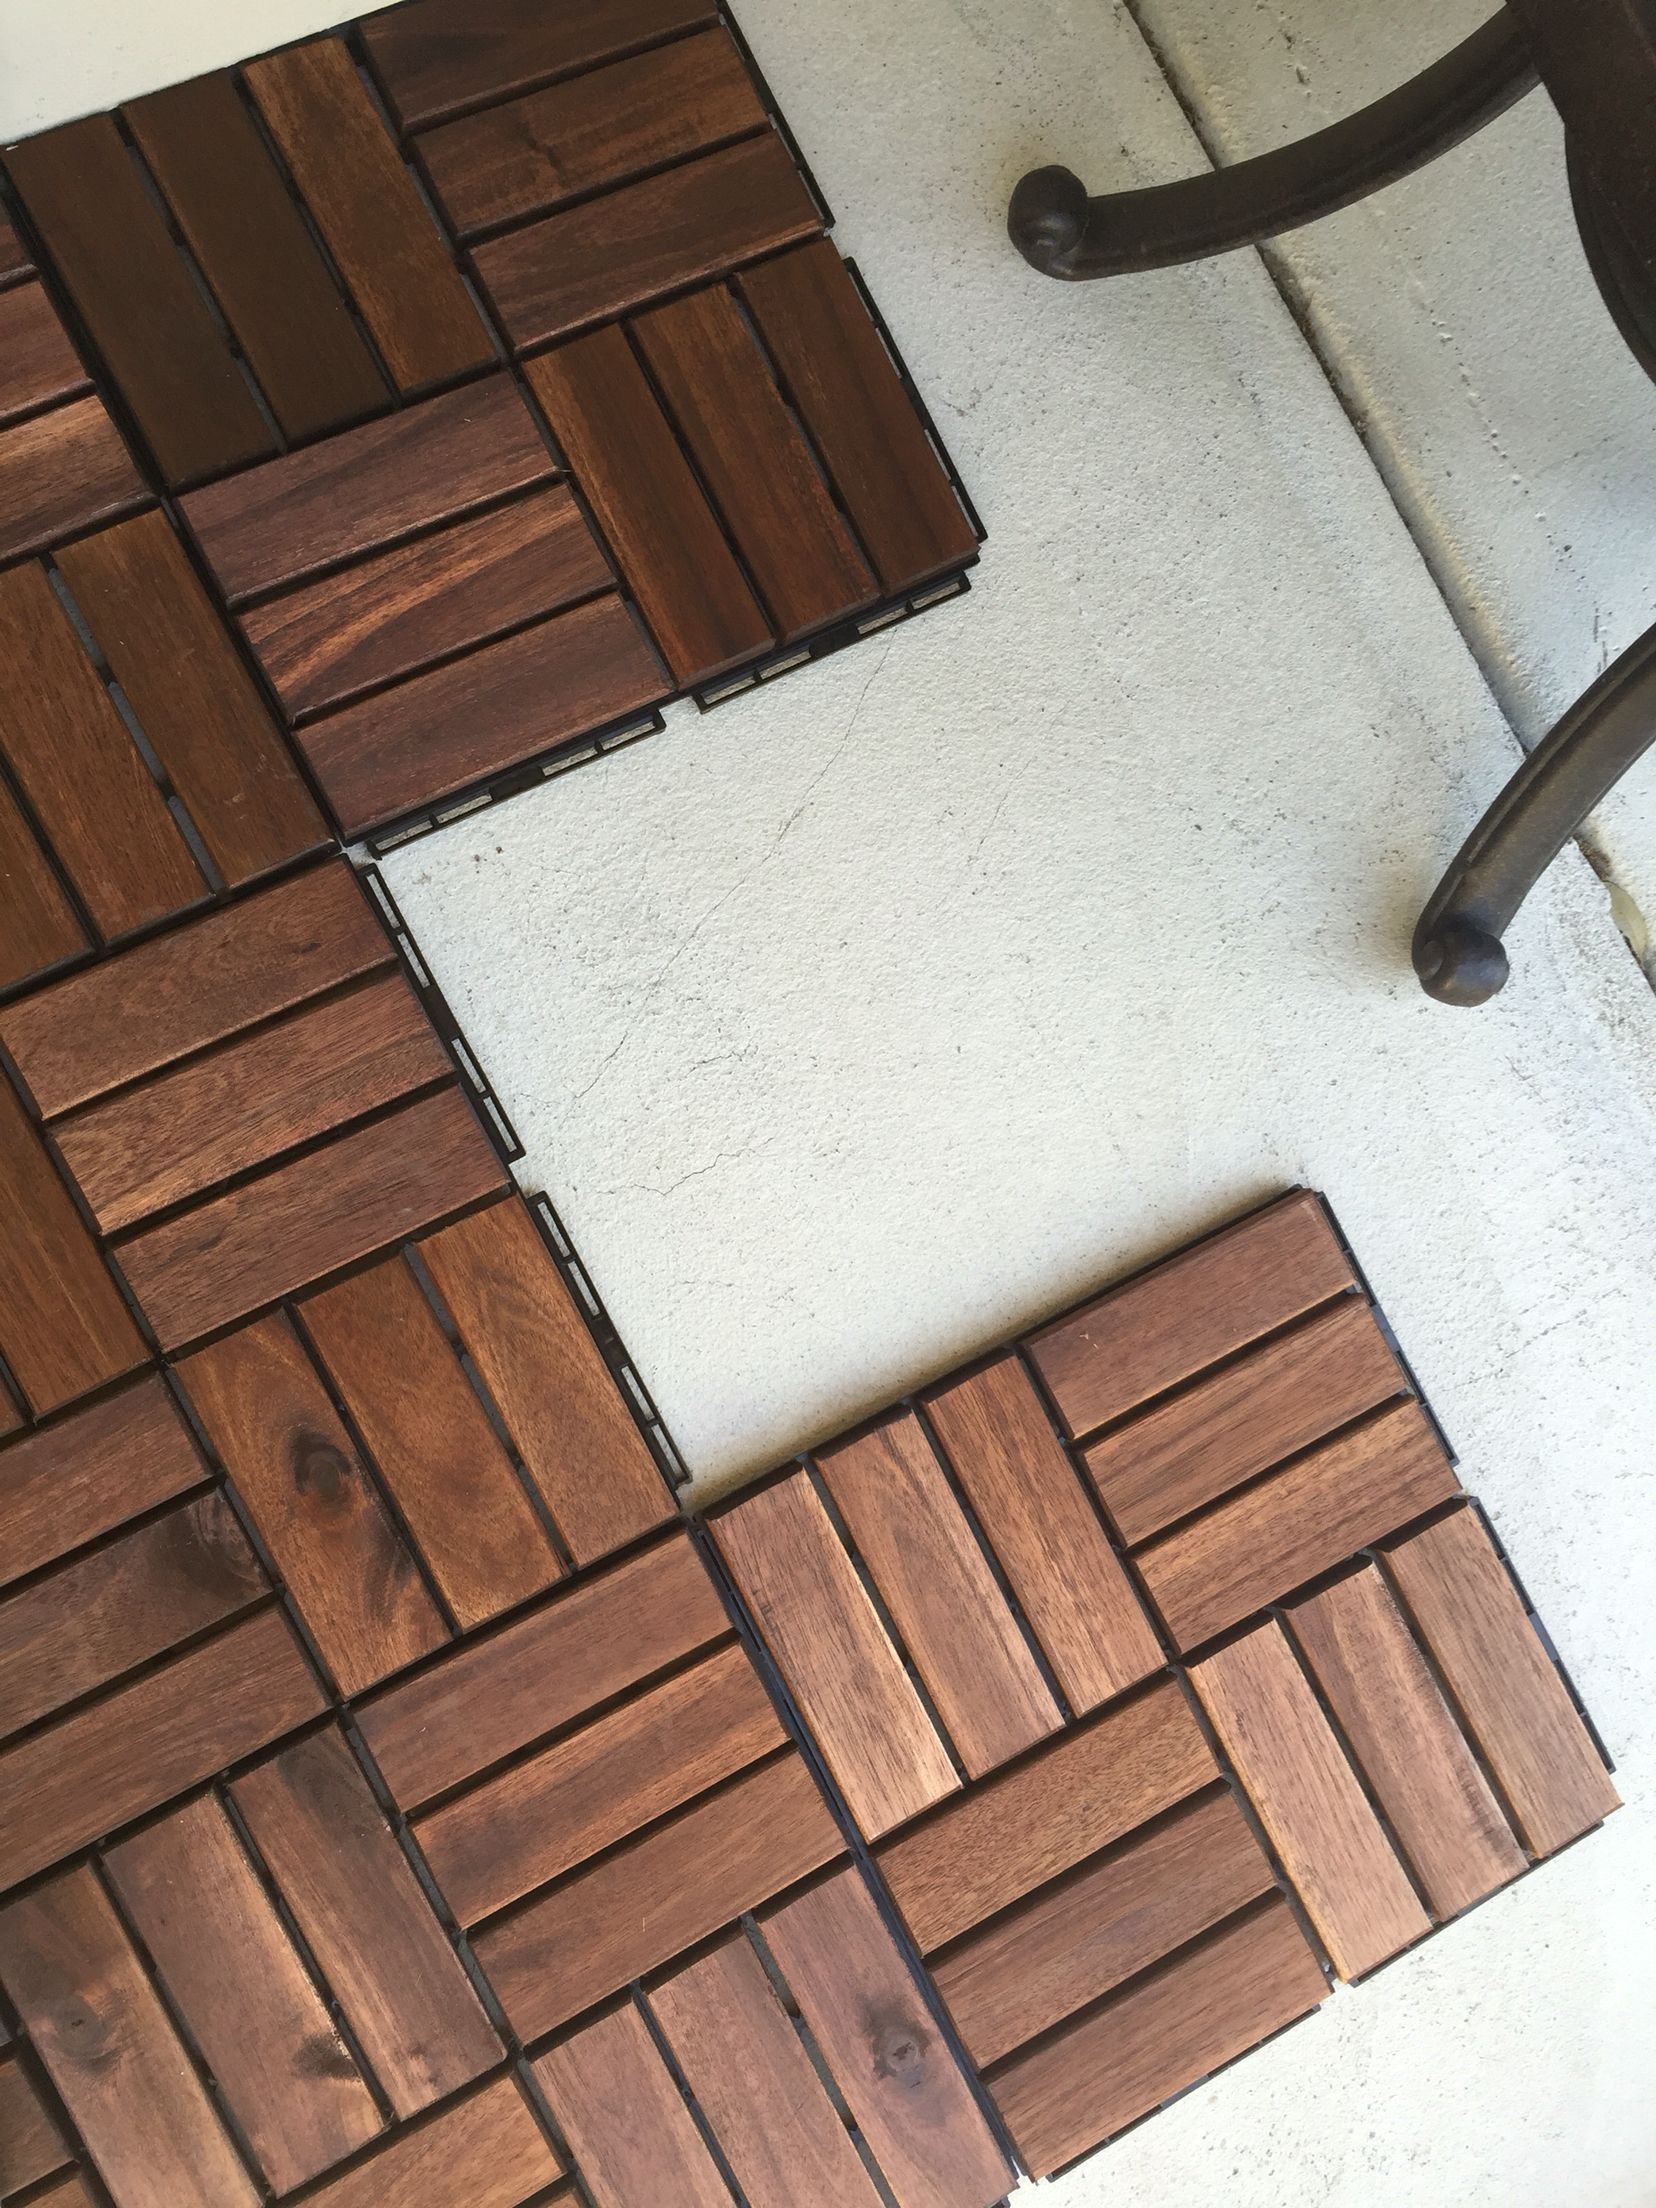 Gentil The IKEA Runnen Decking Tiles Snap Together And Were Pretty Easy To Install.